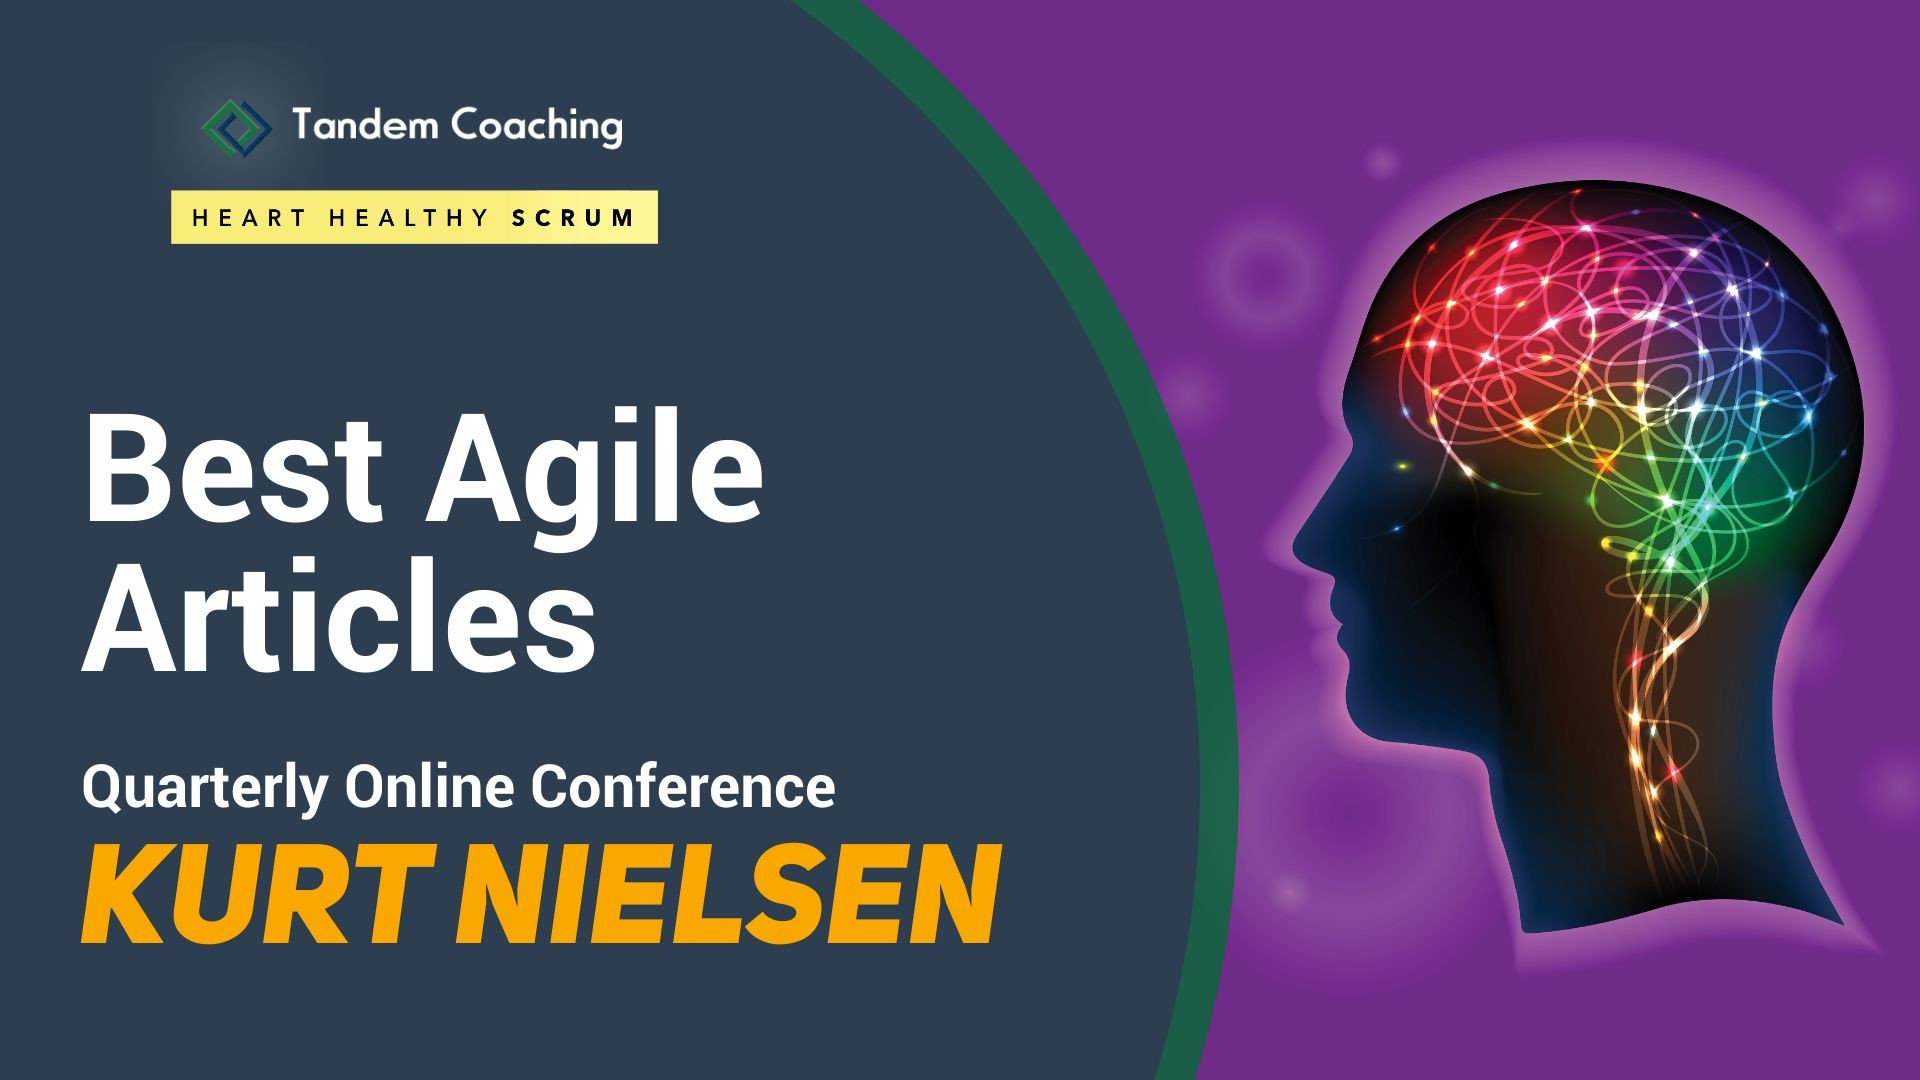 Best Agile Articles Online Conference - Kurt Nielsen